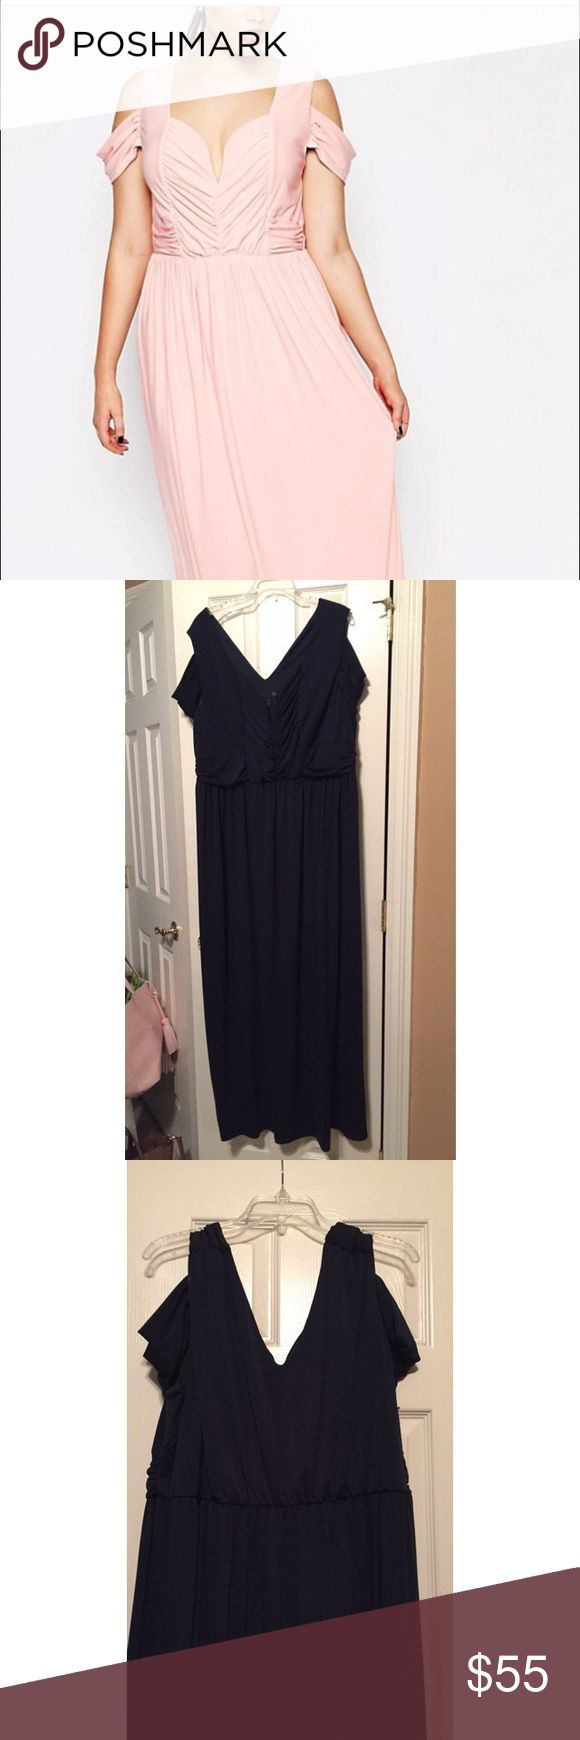 ASOS CURVE Wedding Maxi Dress This dress is a beautiful navy color. Size 22. Worn only once for a formal event. The only flaw is there a few thread pulls on the back of the dress. Perfect for a Prom, Ball, or any other glamorous event! ASOS Curve Dresses Maxi